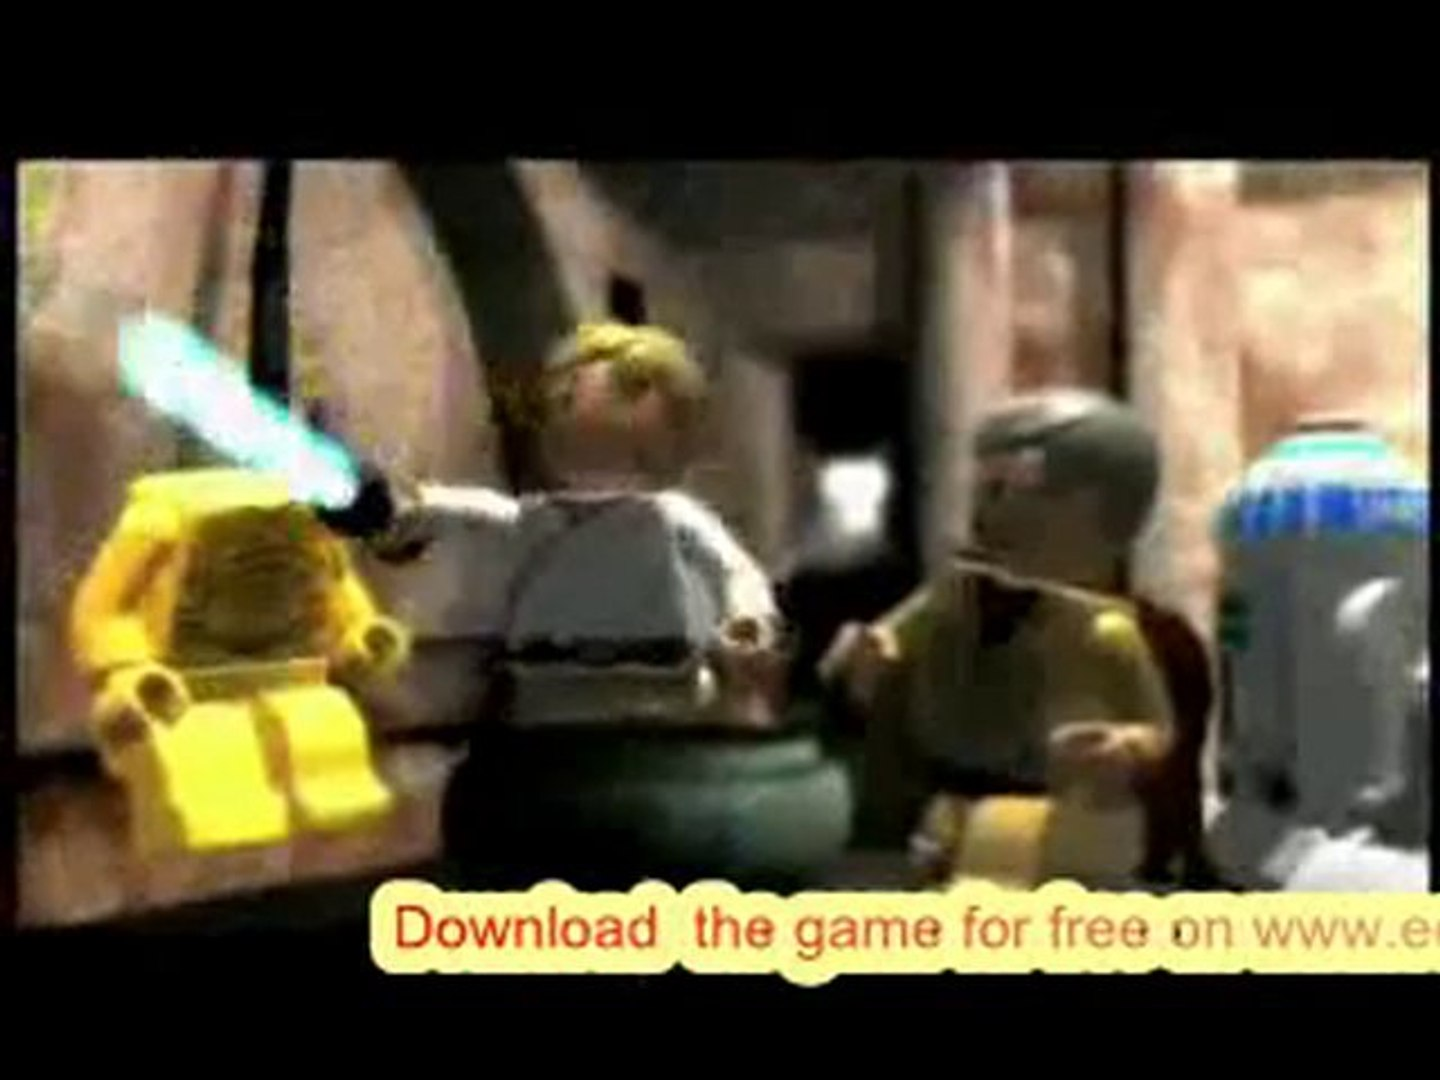 LEGO Star Wars 3 The Clone Wars psp Gameplay Free Game